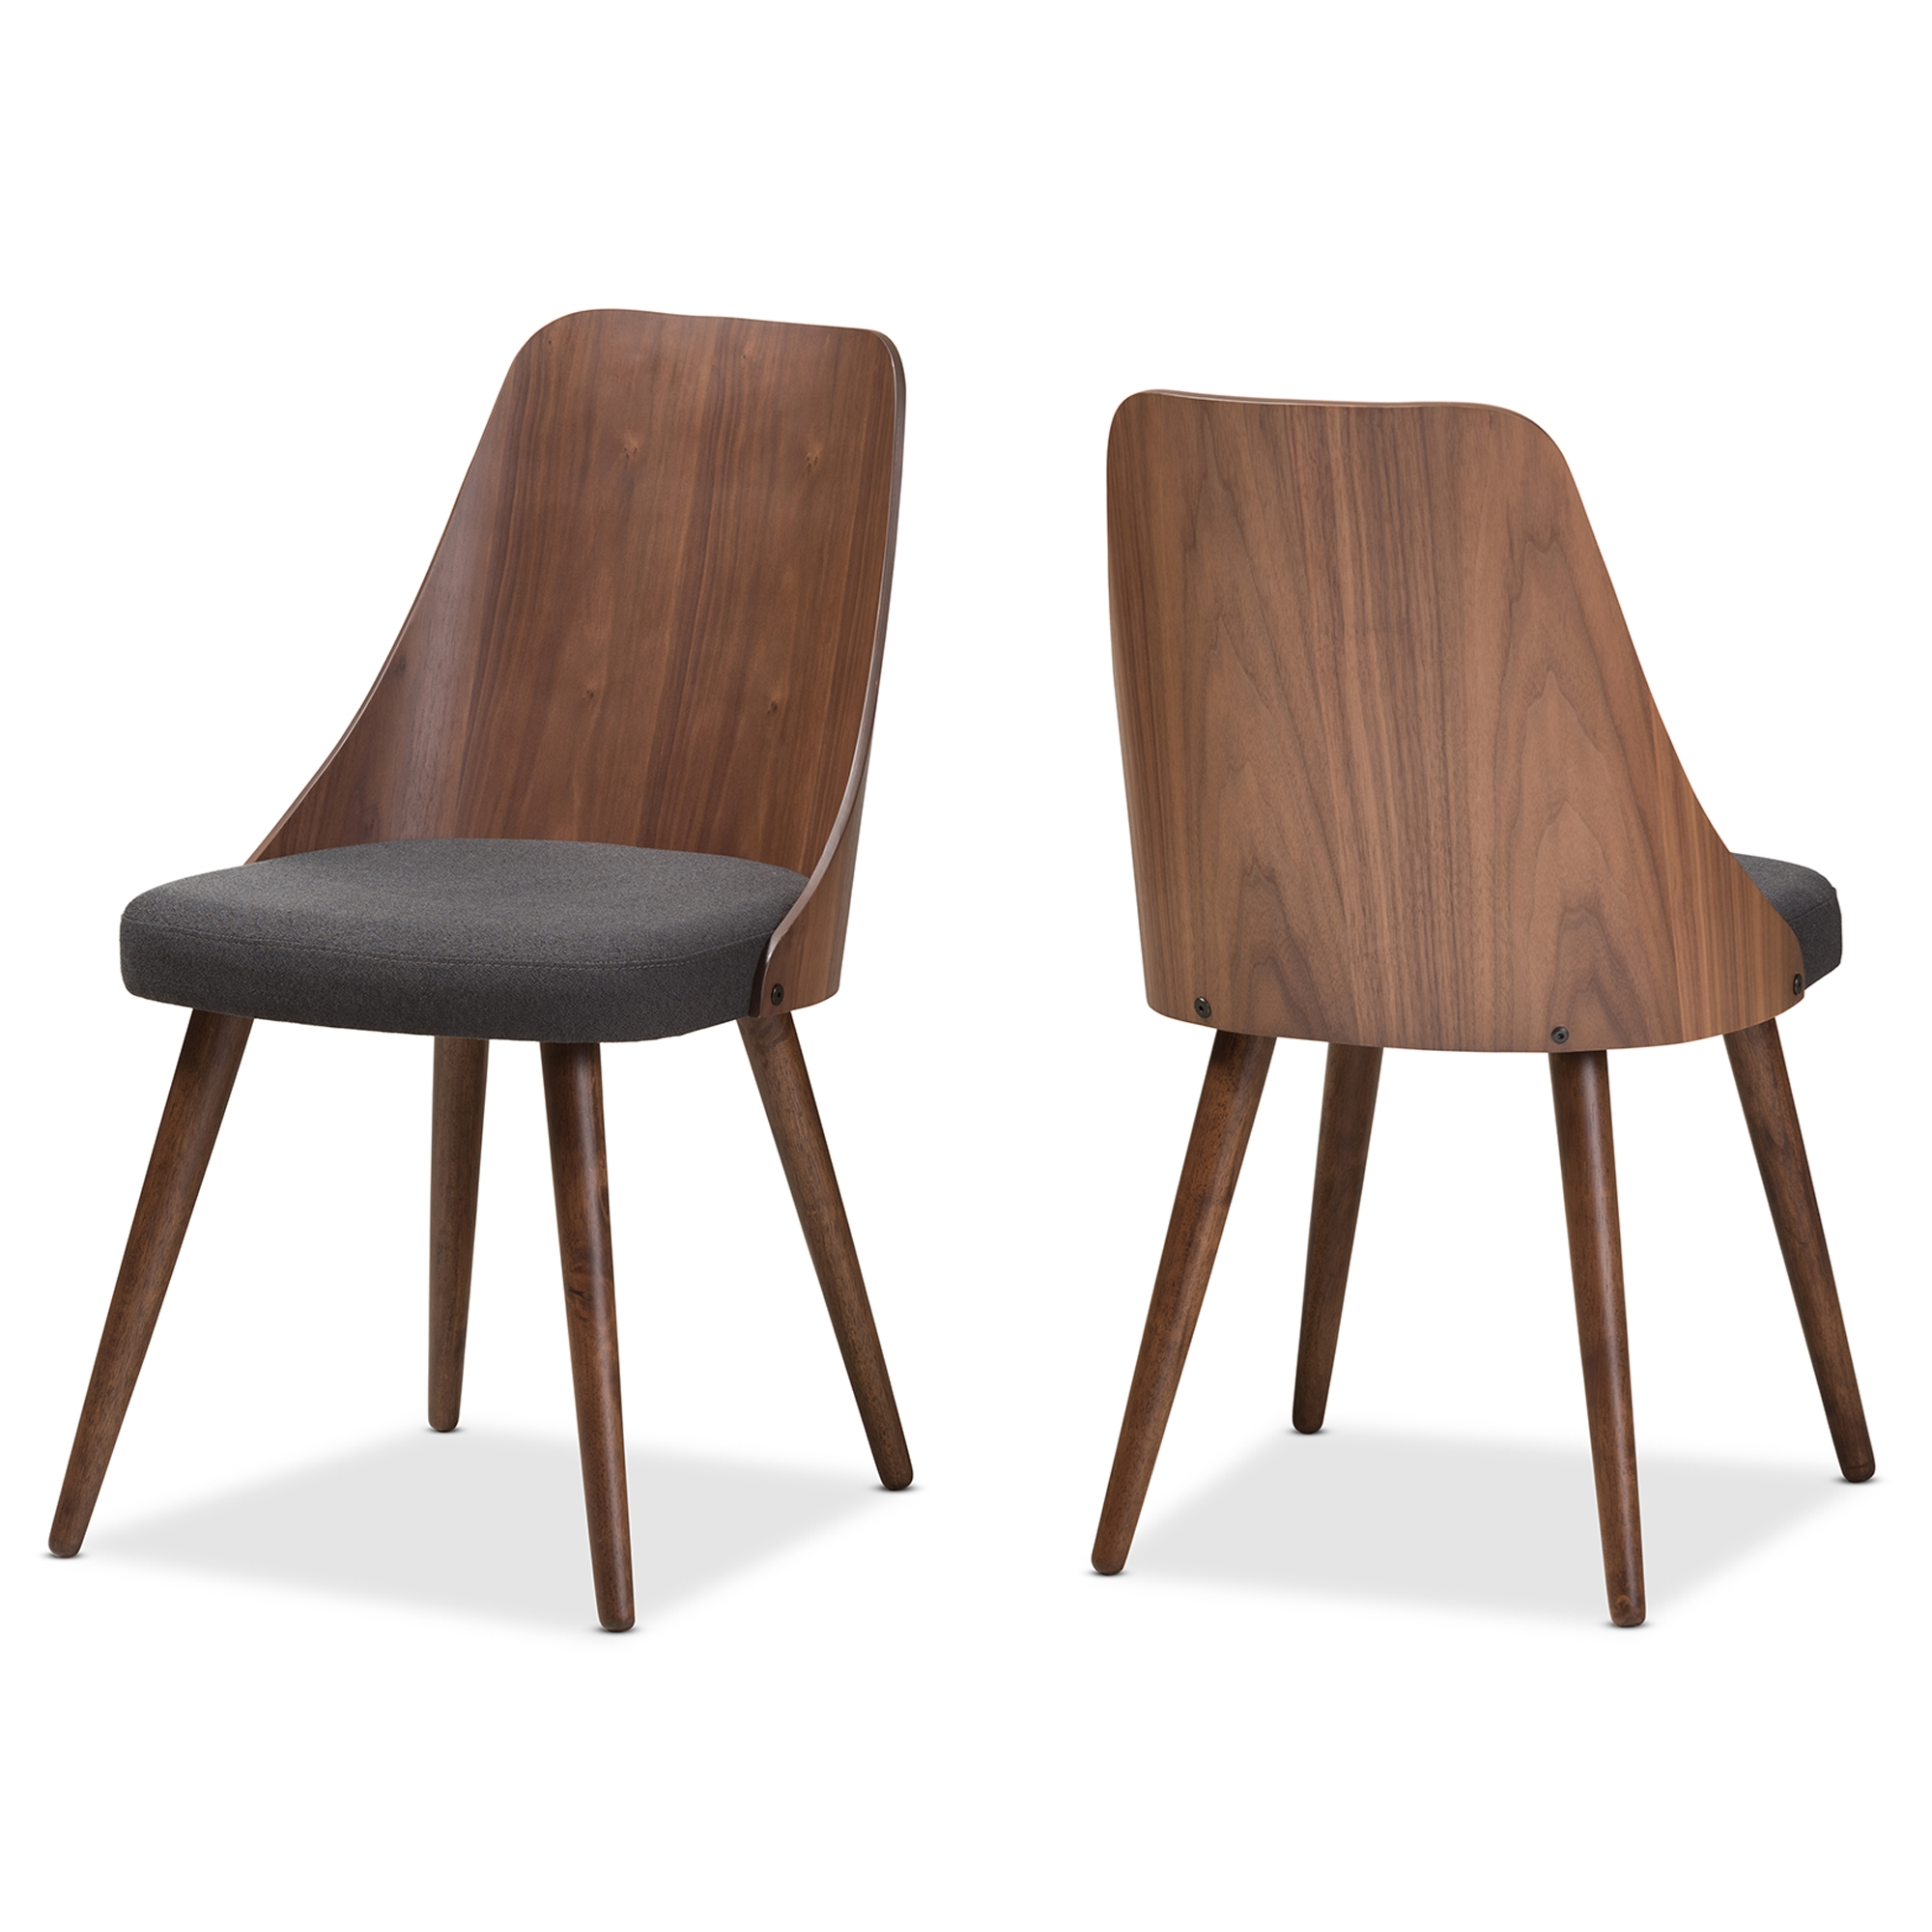 Modern Wooden Dining Room Chairs Baxton Studio Romily Mid Century Modern Walnut Wood Dark